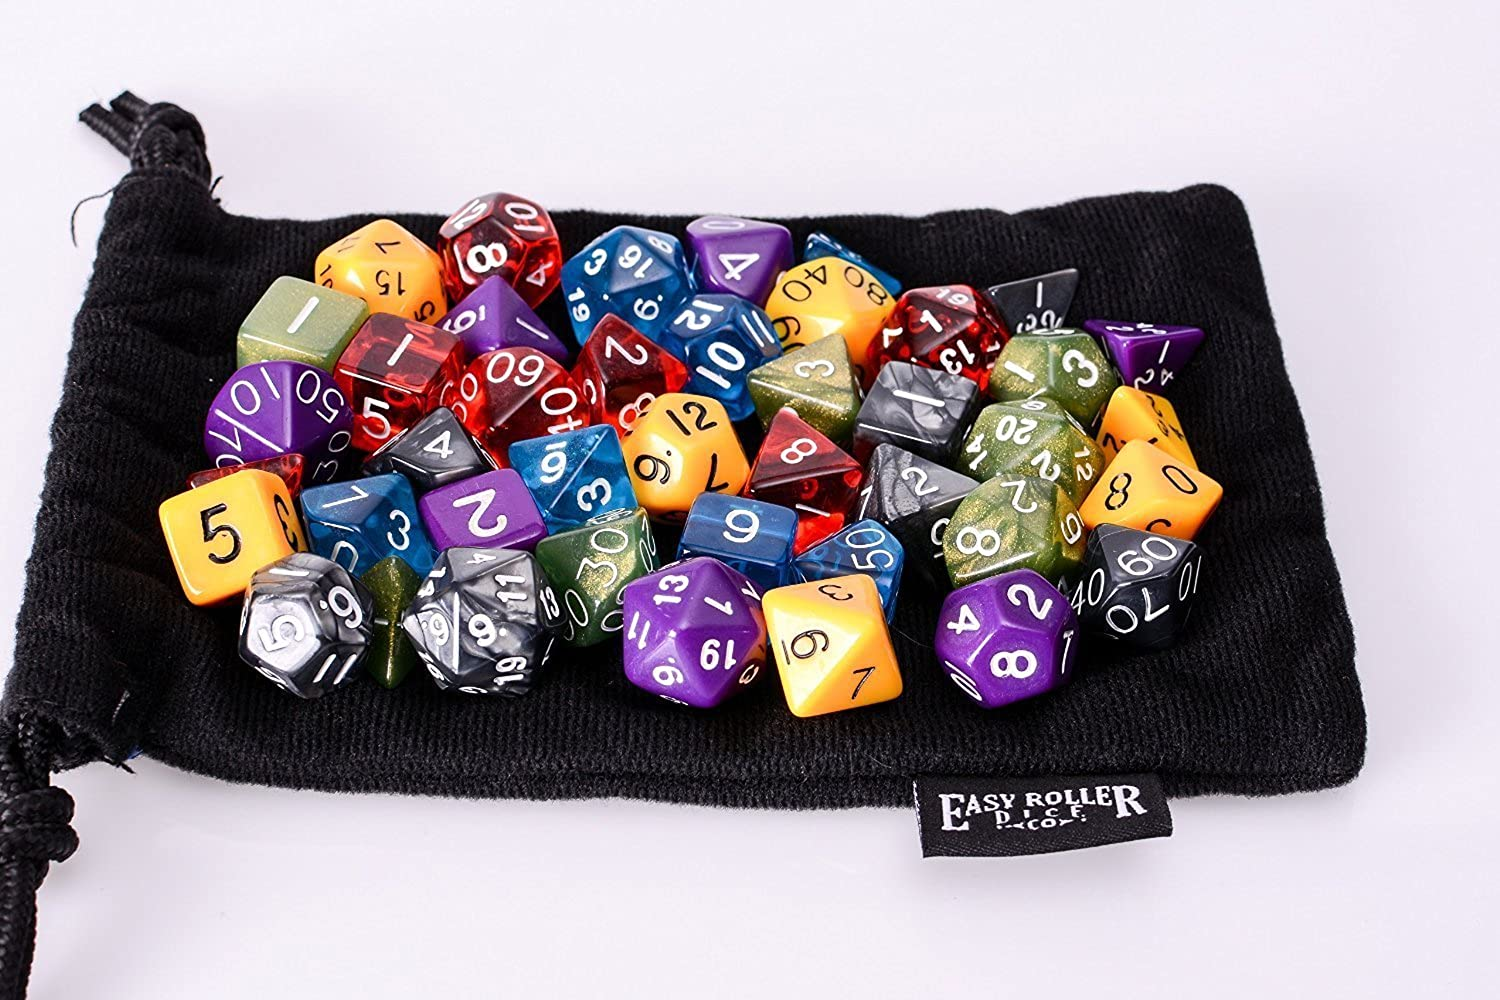 Easy Roller Dice 42 Polyhedral Dice with Large Velvet Dice Bag Set of 6